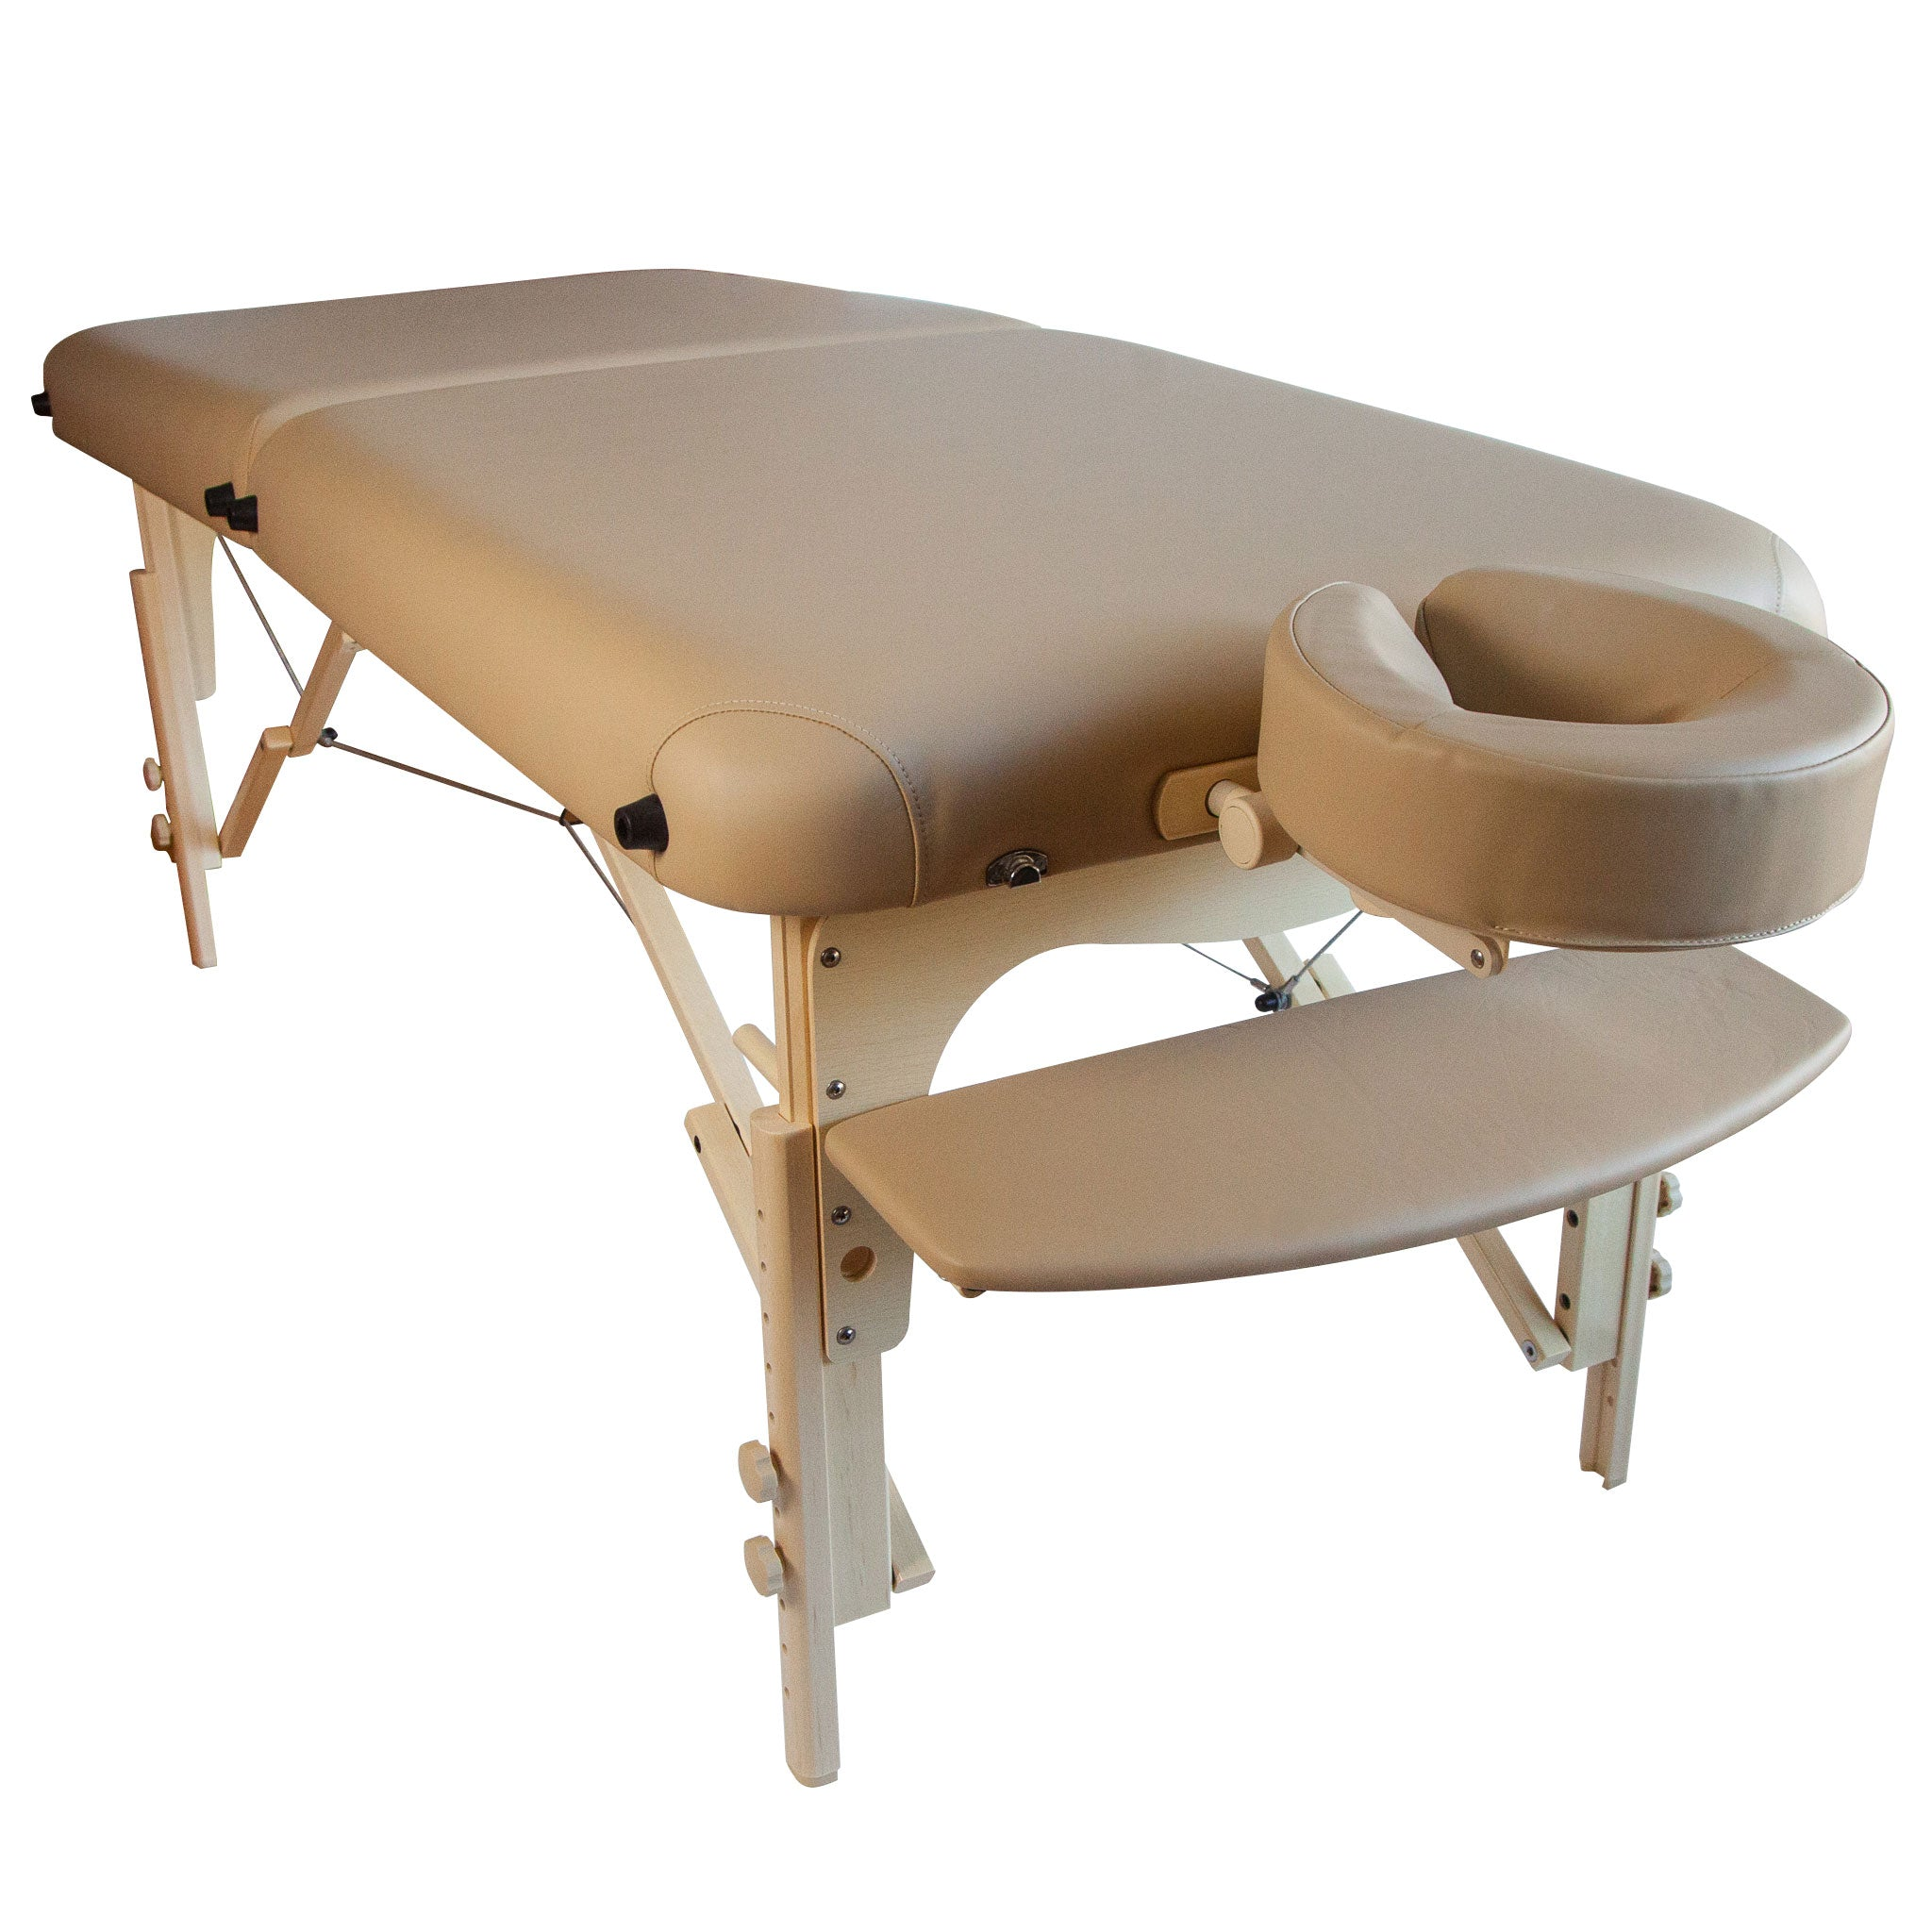 sports image massage custom portable omni craftworks massagetablesnow com table